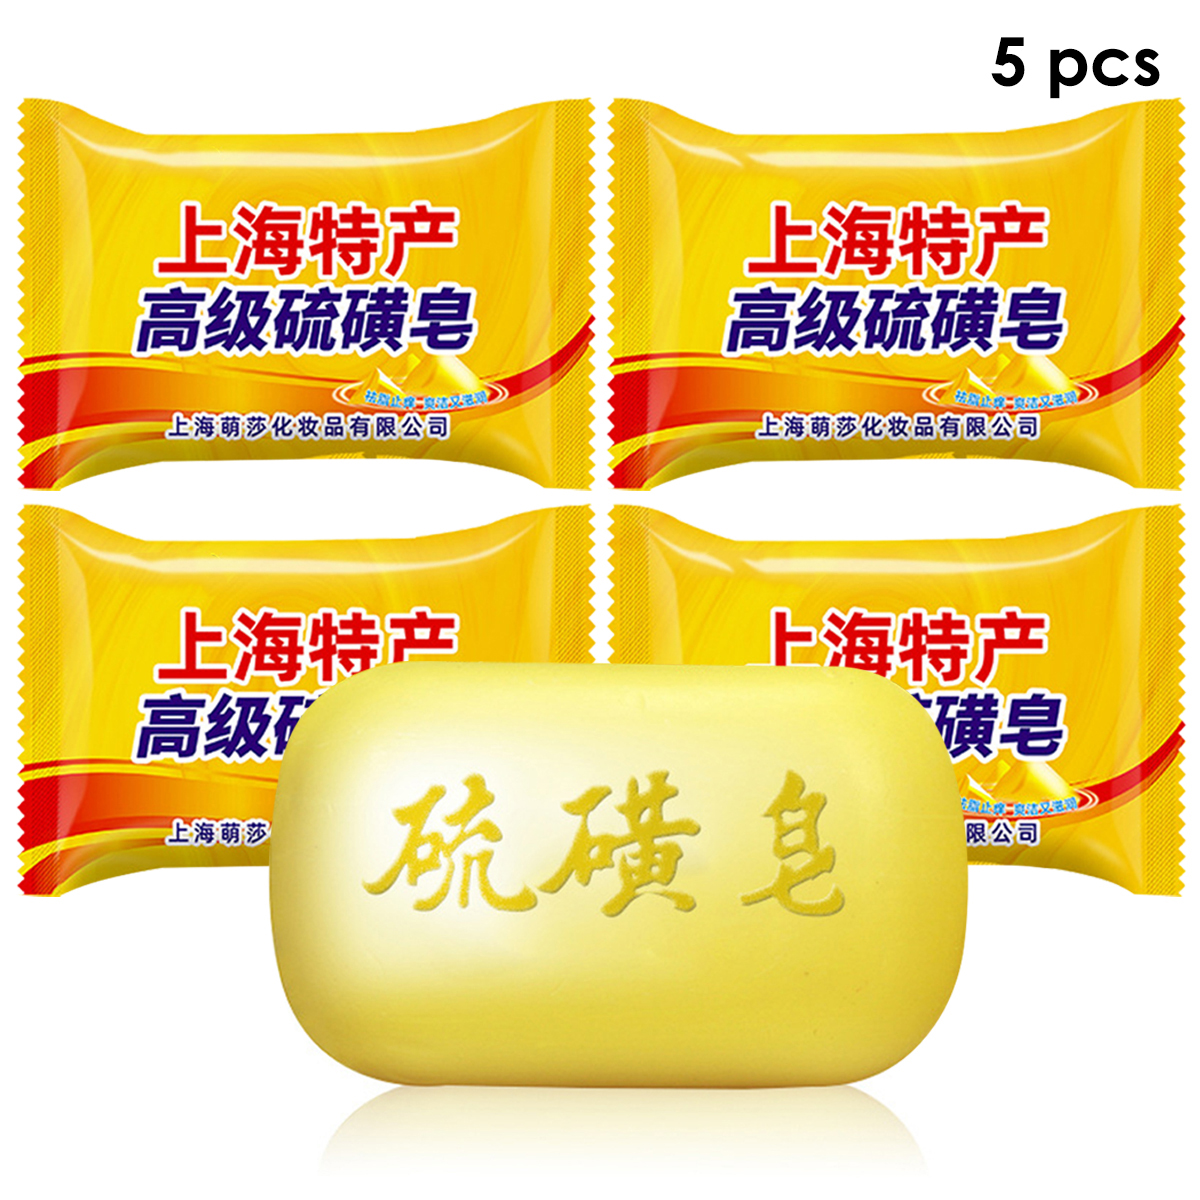 5pcs Sulfur Soap Itching Relief Soap Oil-Control Acne Treatment Lackhead Remover Soap For Face Hand Cleansing Bathing